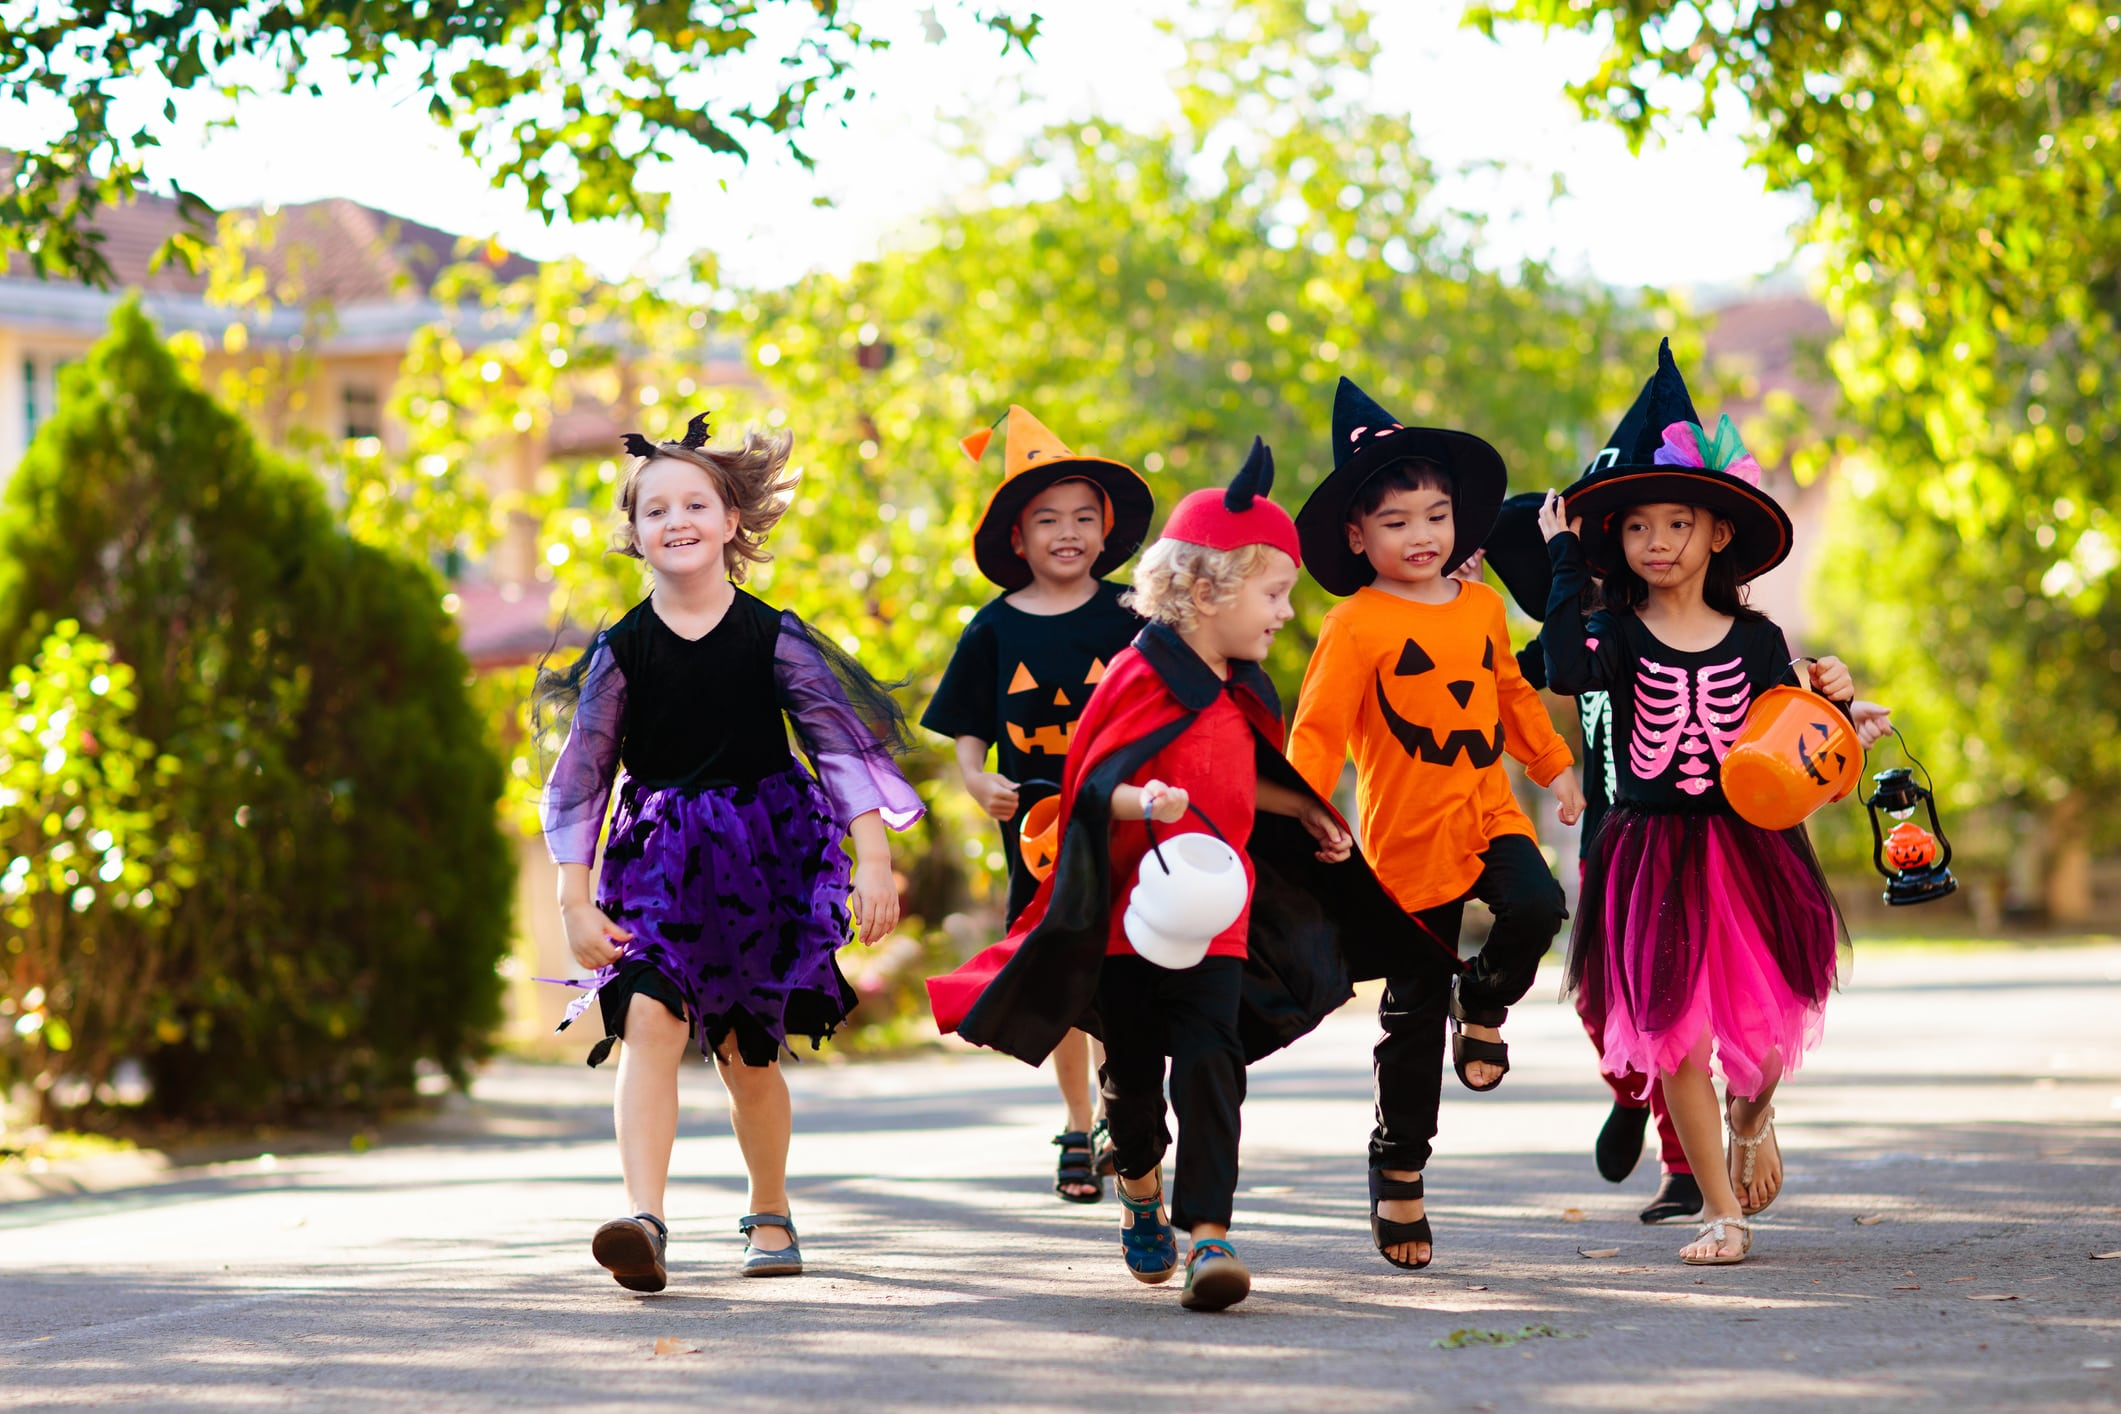 A group of children dressed in Halloween costumes ready to go trick-or-treating